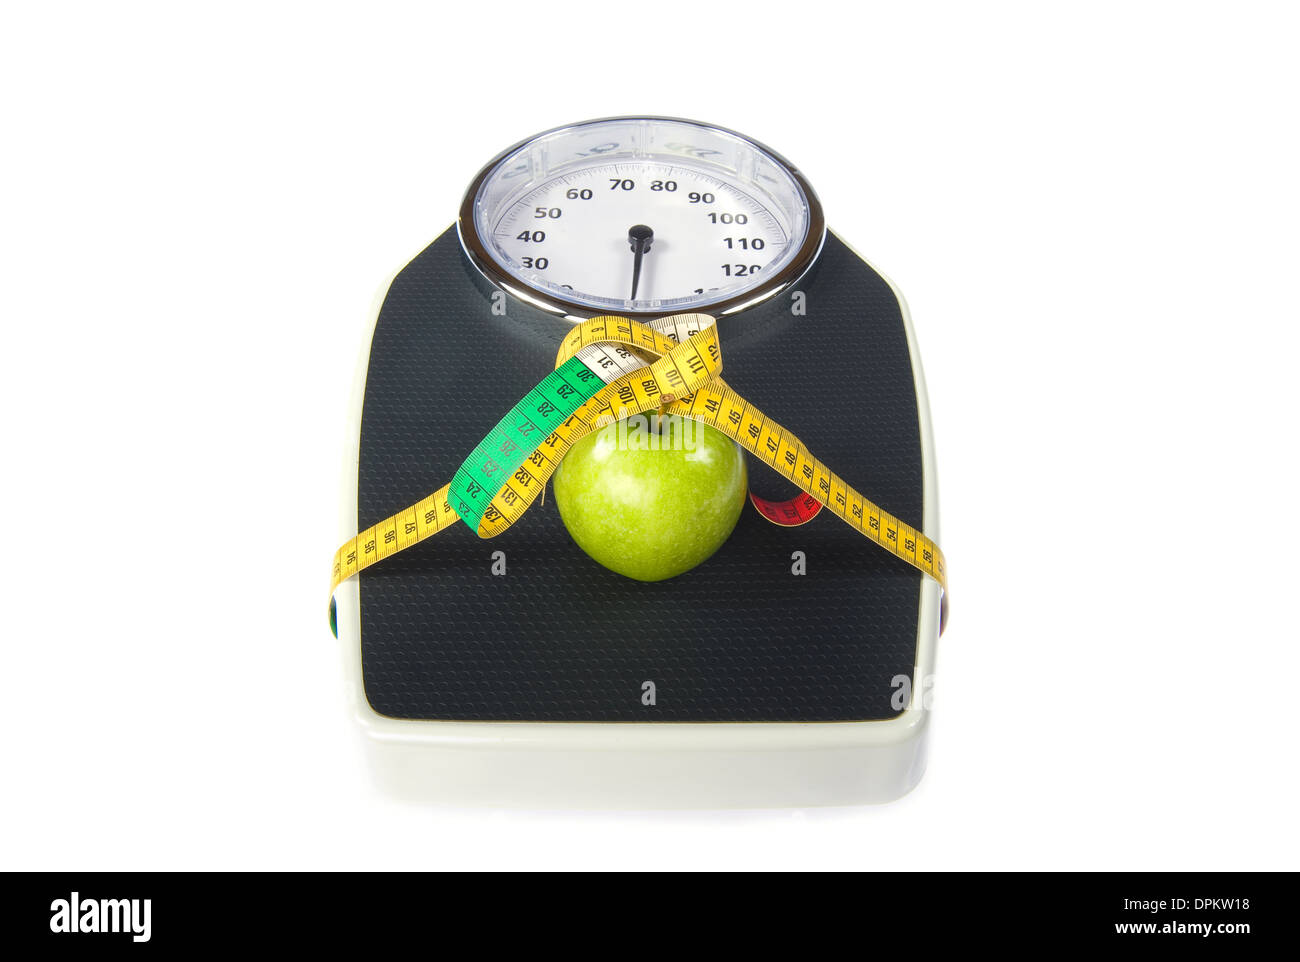 A weight scale with measuring tape and an apple - Stock Image